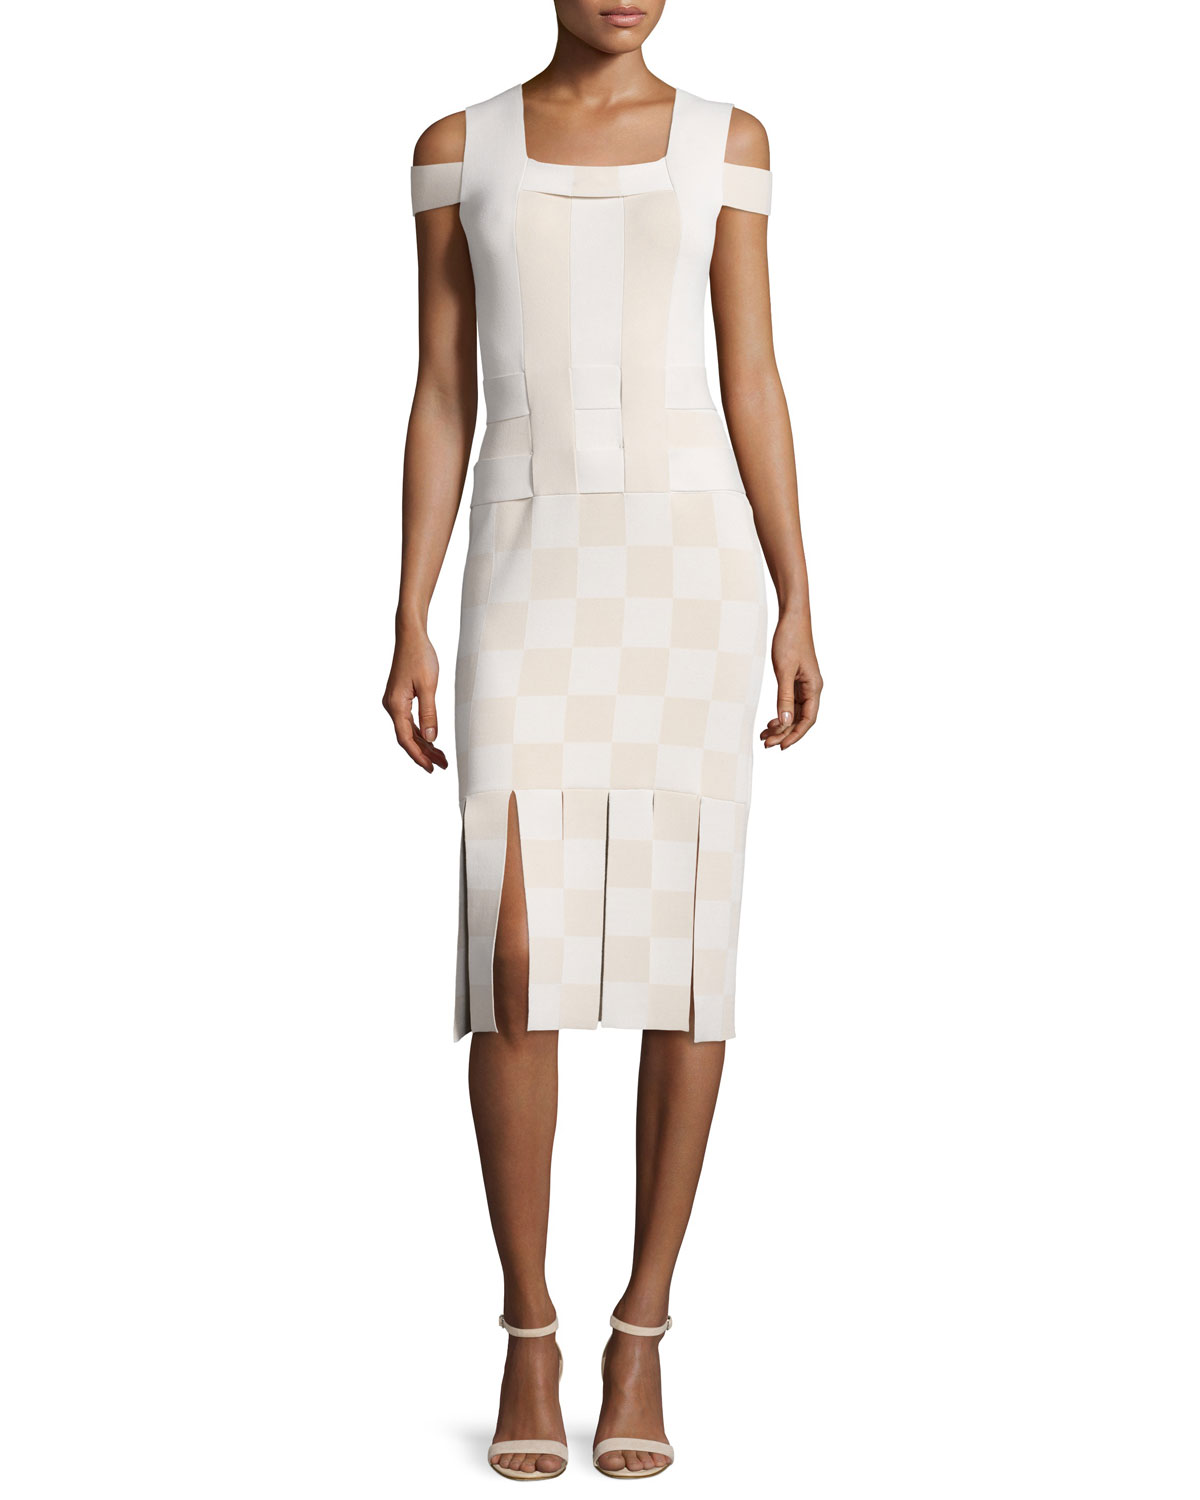 Opening Ceremony Cold-Shoulder Basketweave Sheath Dress, Sycamore, Size: M, Sycamore Multi